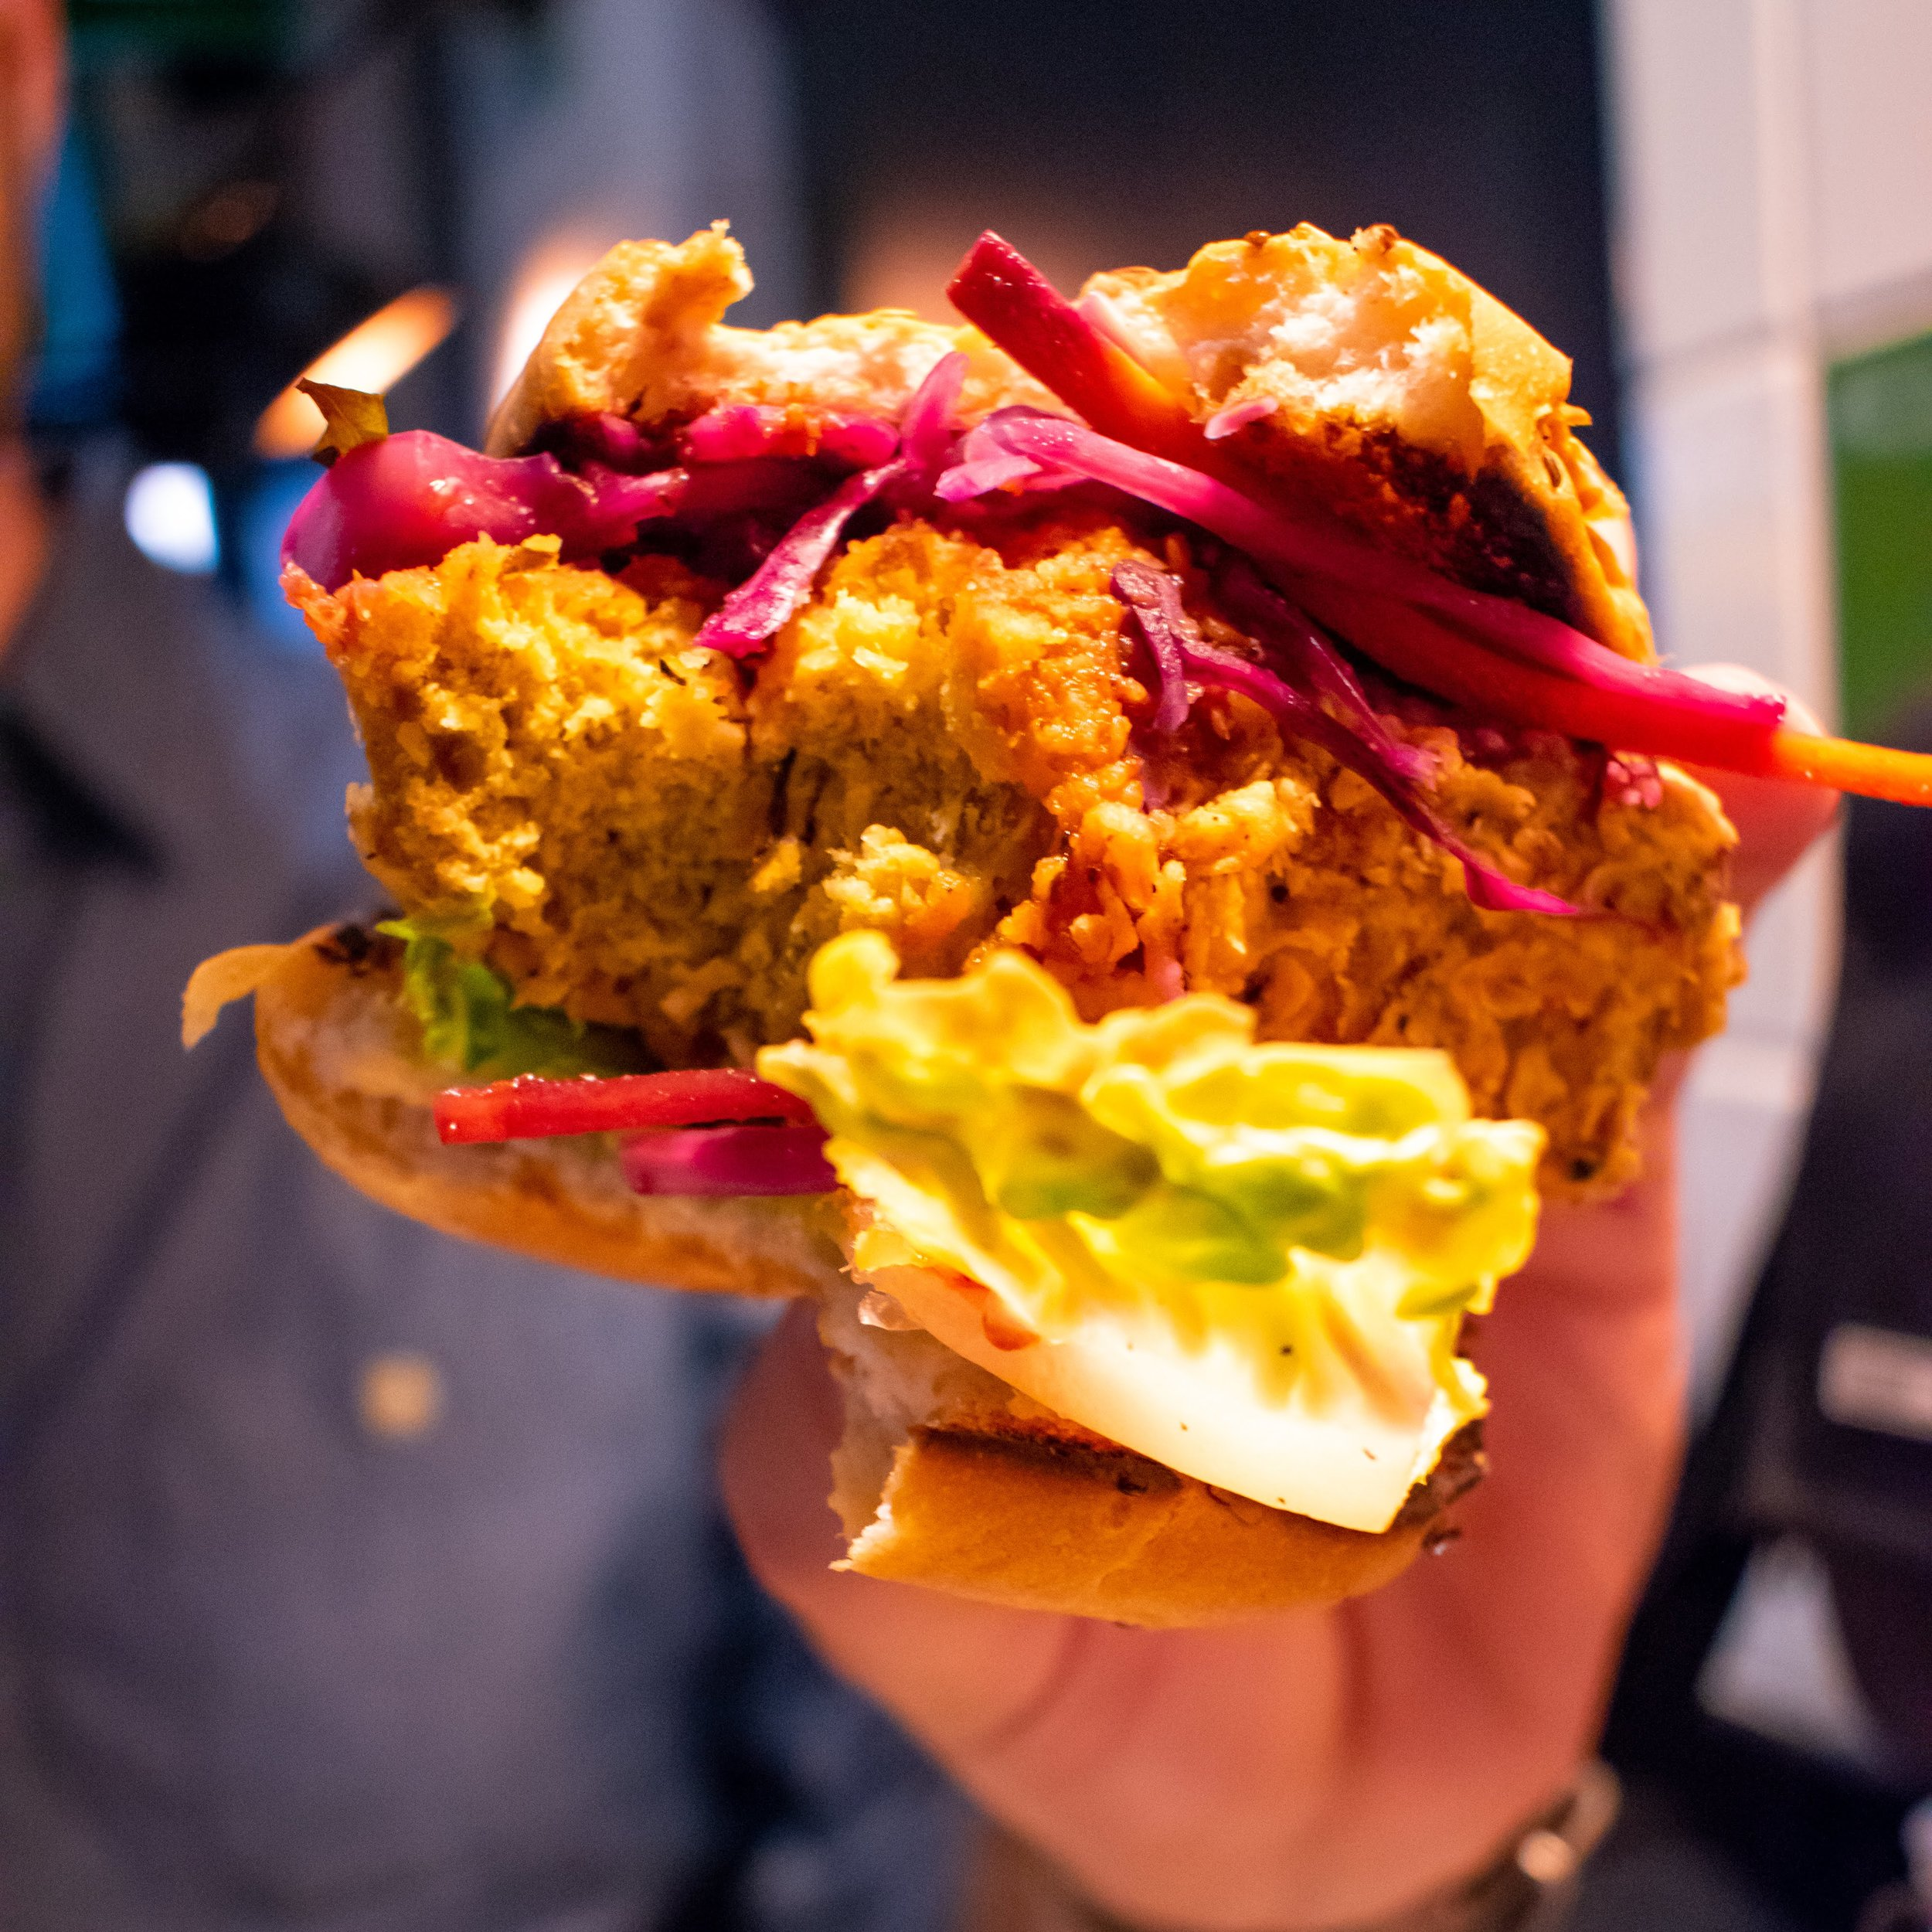 uprooted-traveler-dublin-ireland-vegan-slider-chicken-fried.jpg